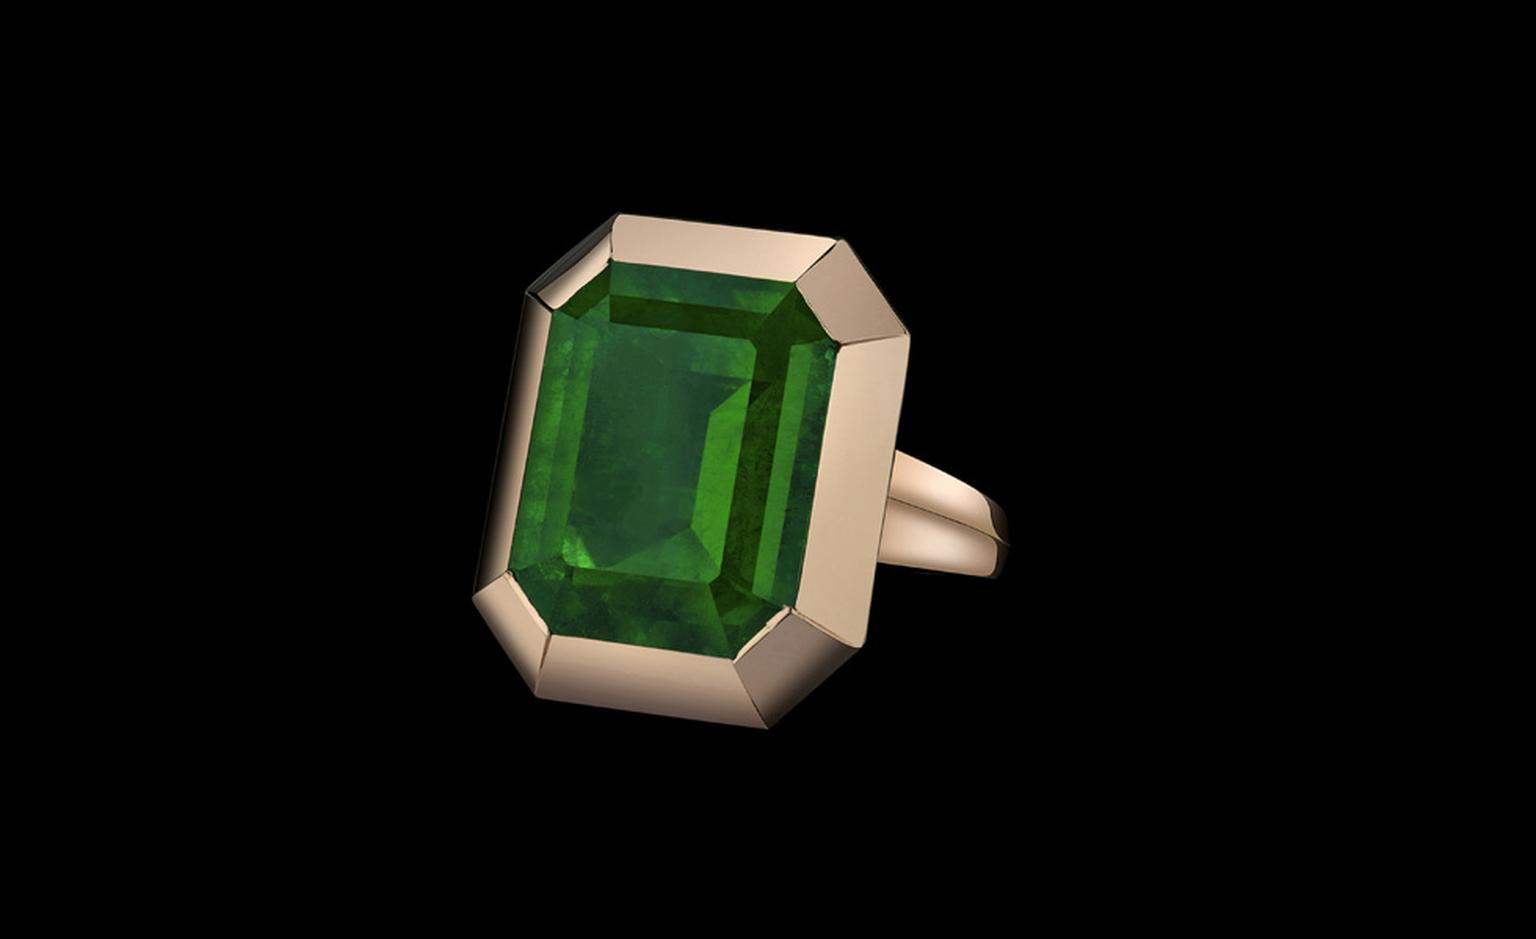 'Style of Jolie' Collection Emerald Tablet Ring created with L.A. jeweller Robert Procop, inspired by ancient tablet carvings